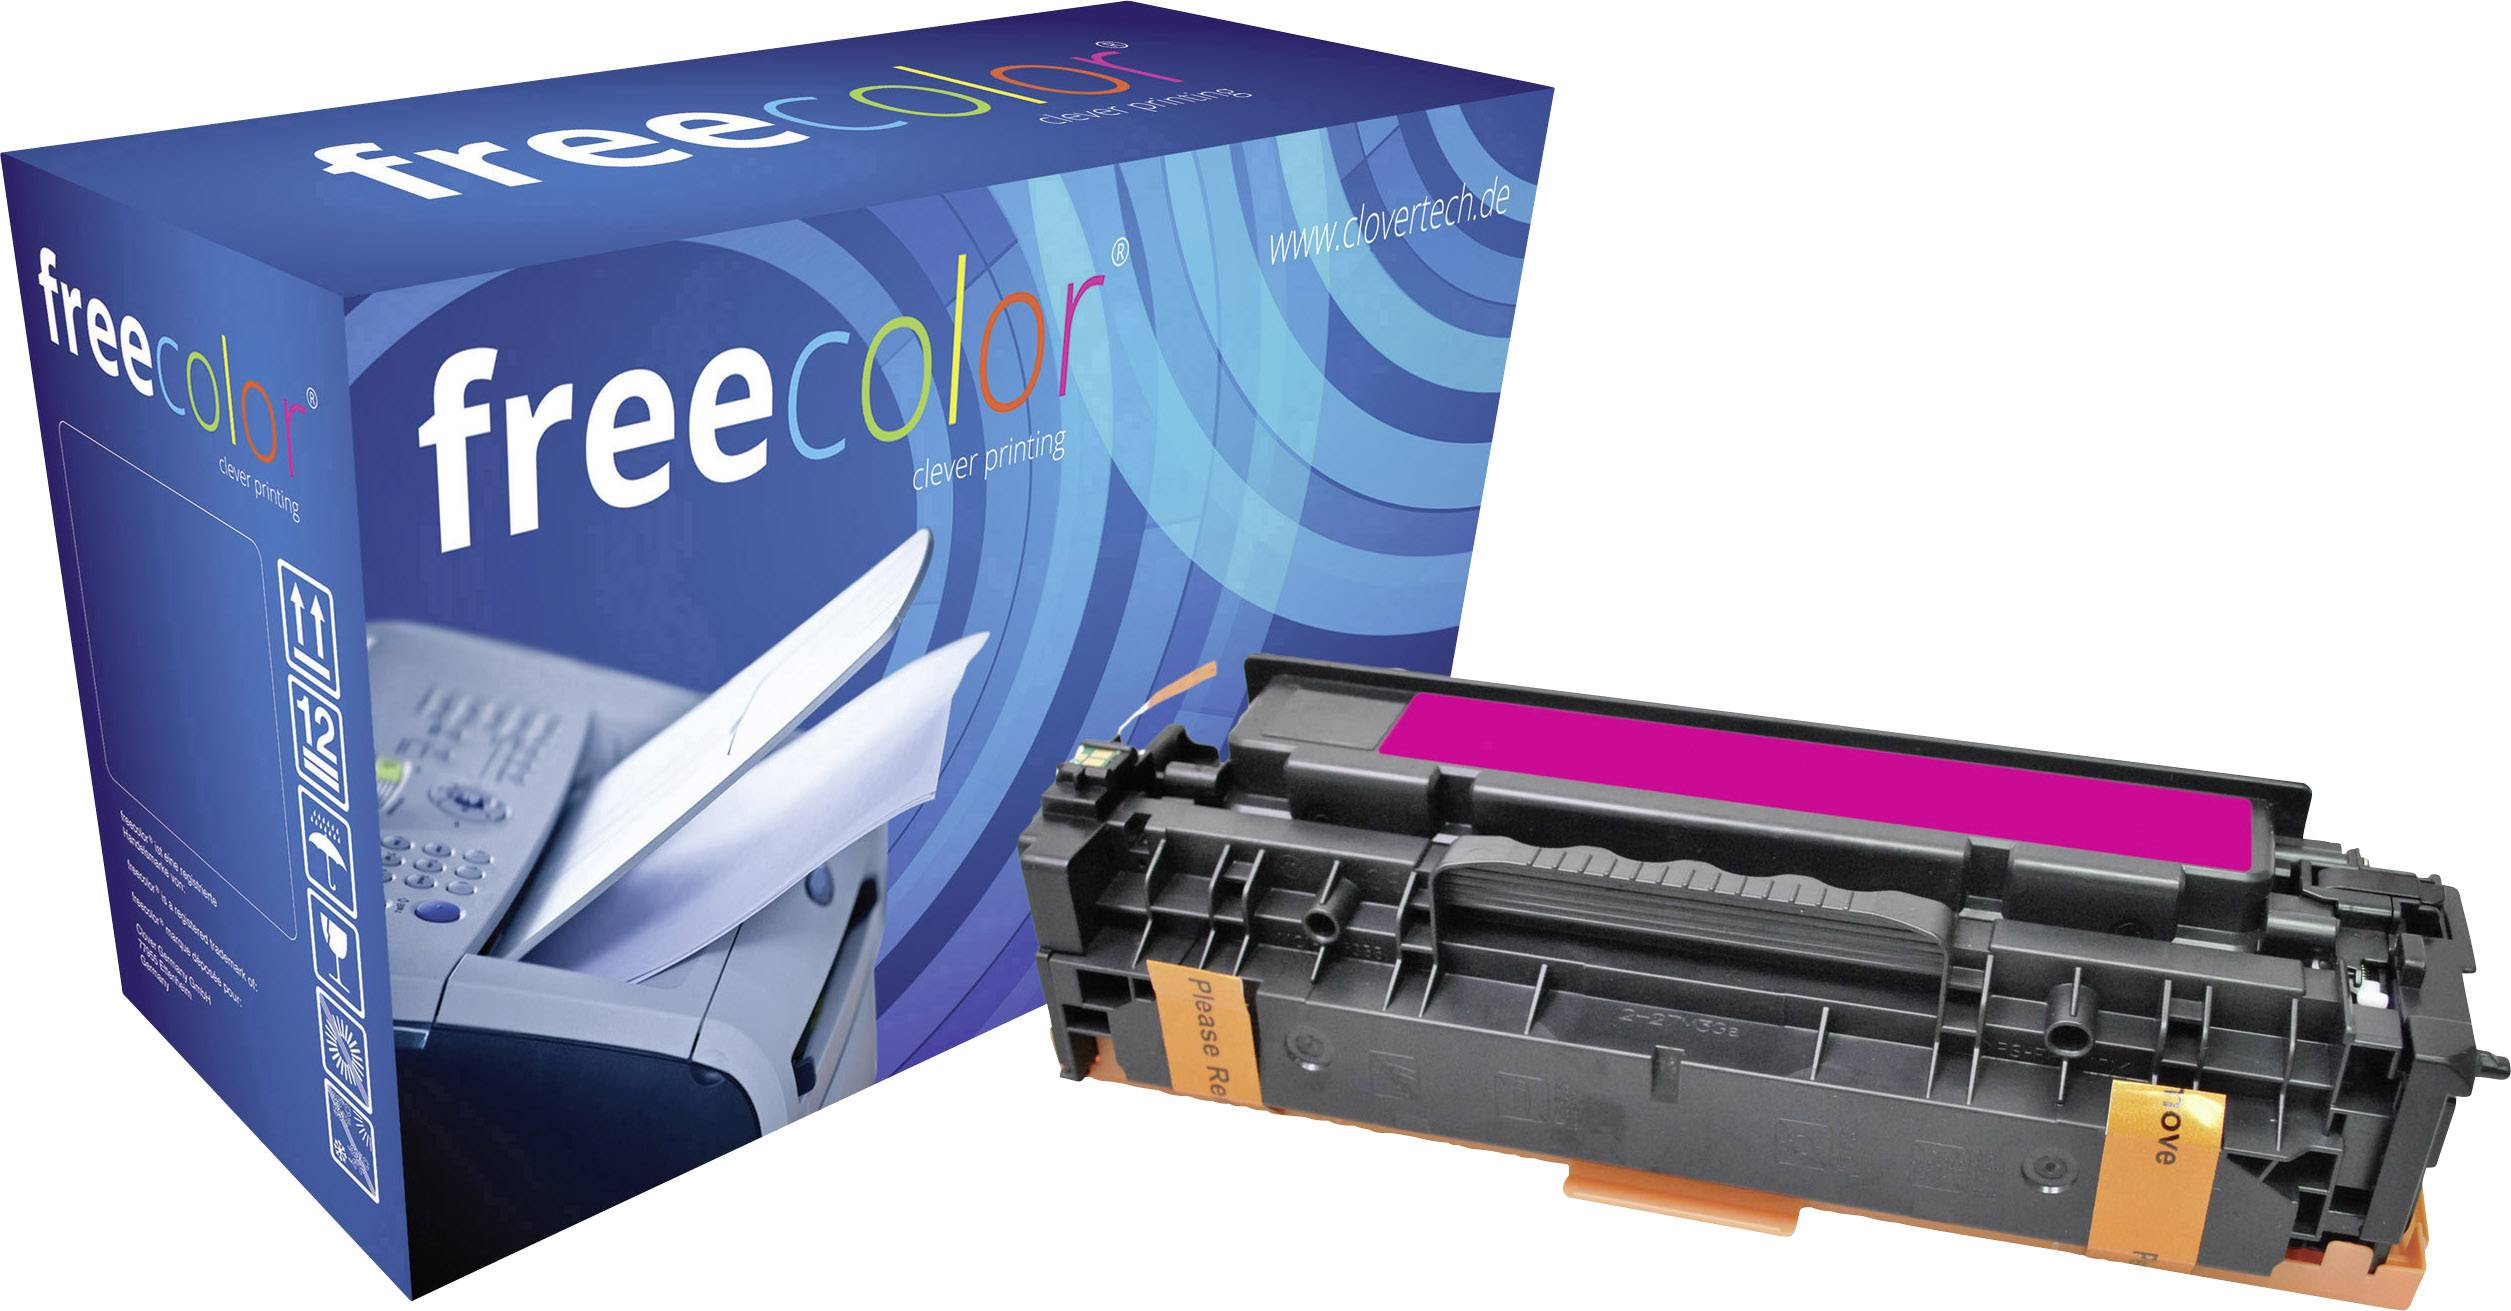 freecolor Toner sostituisce HP